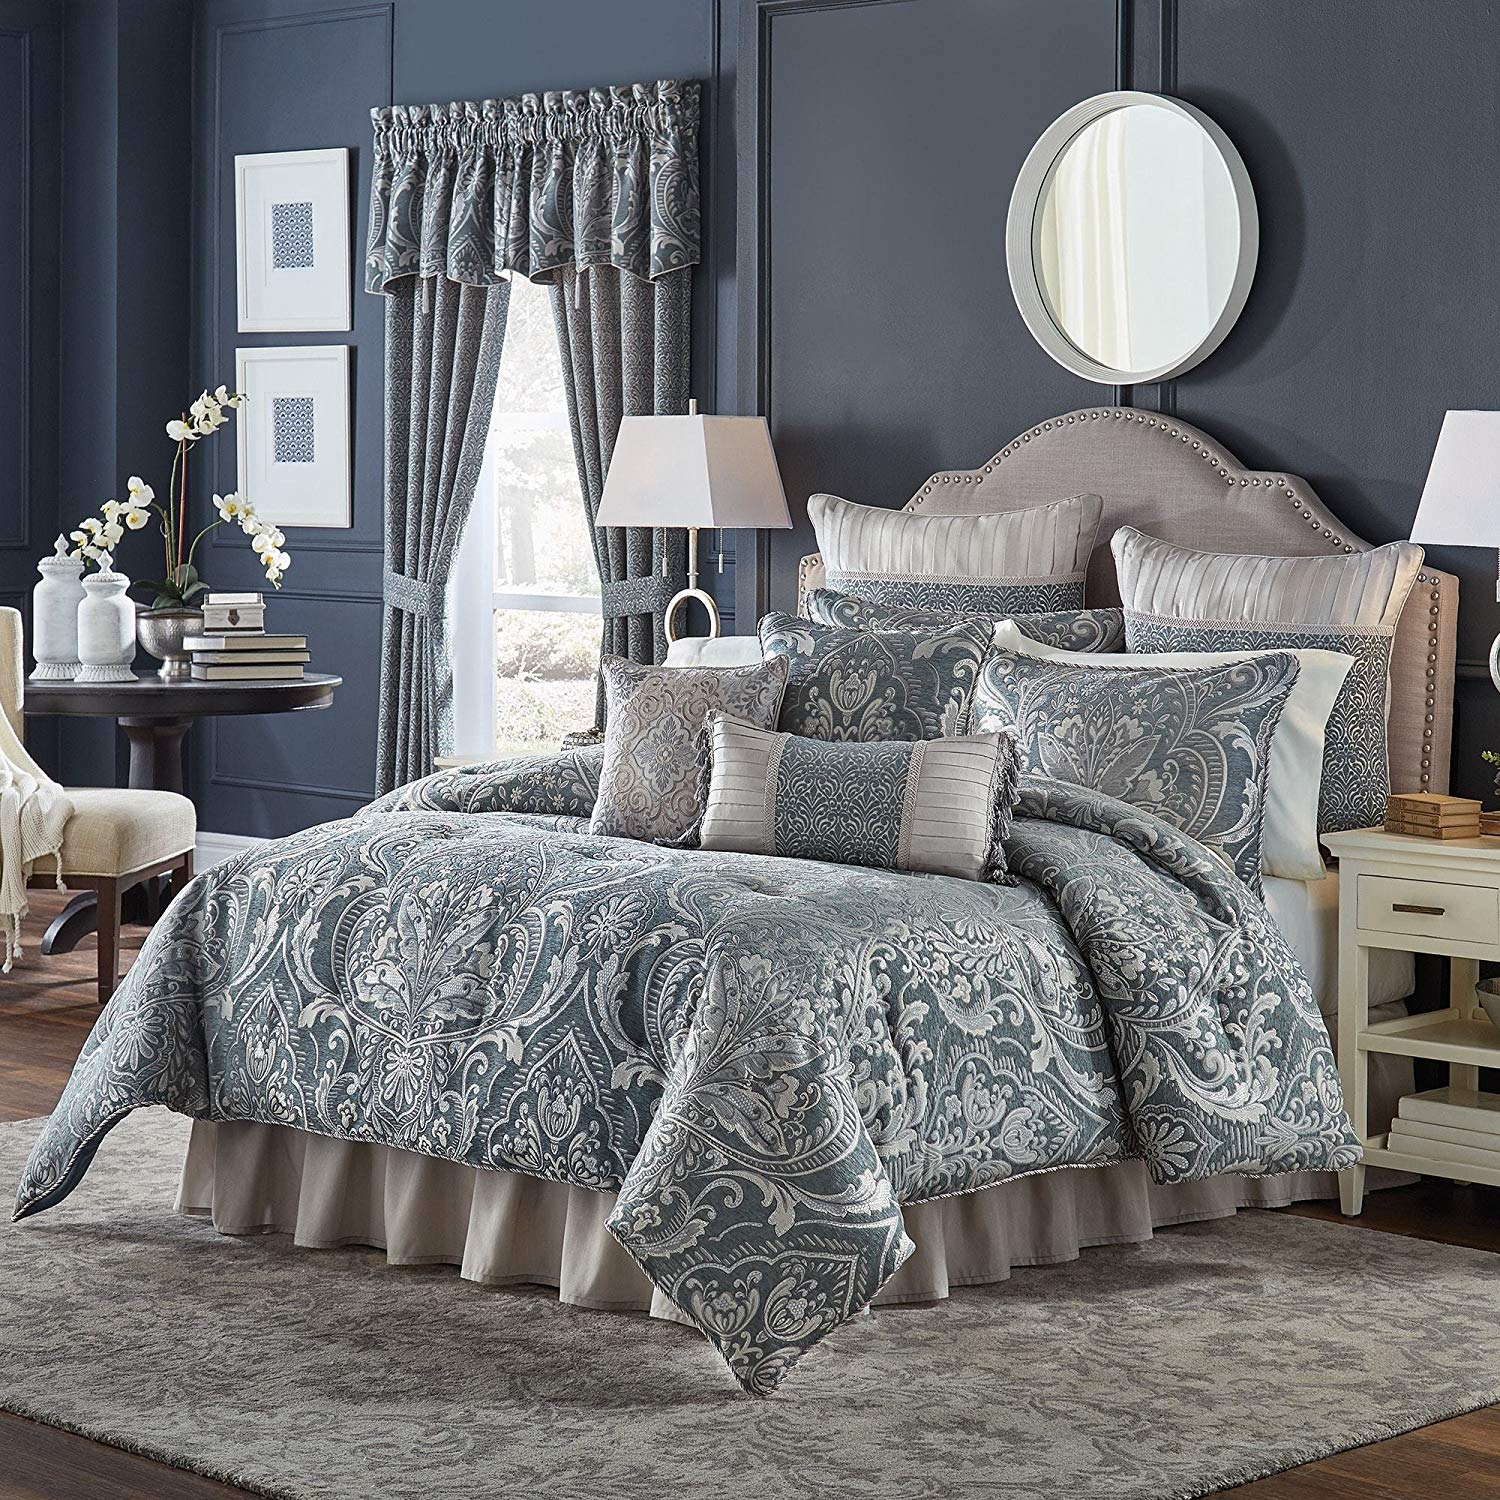 TL 4 Piece Slate Blue Damask Geometric Printed Comforter Set Queen, Light Blue Silver Woven Jacquard Pattern Adult Bedding Master Bedroom Classic Glam Colorful, Polyester